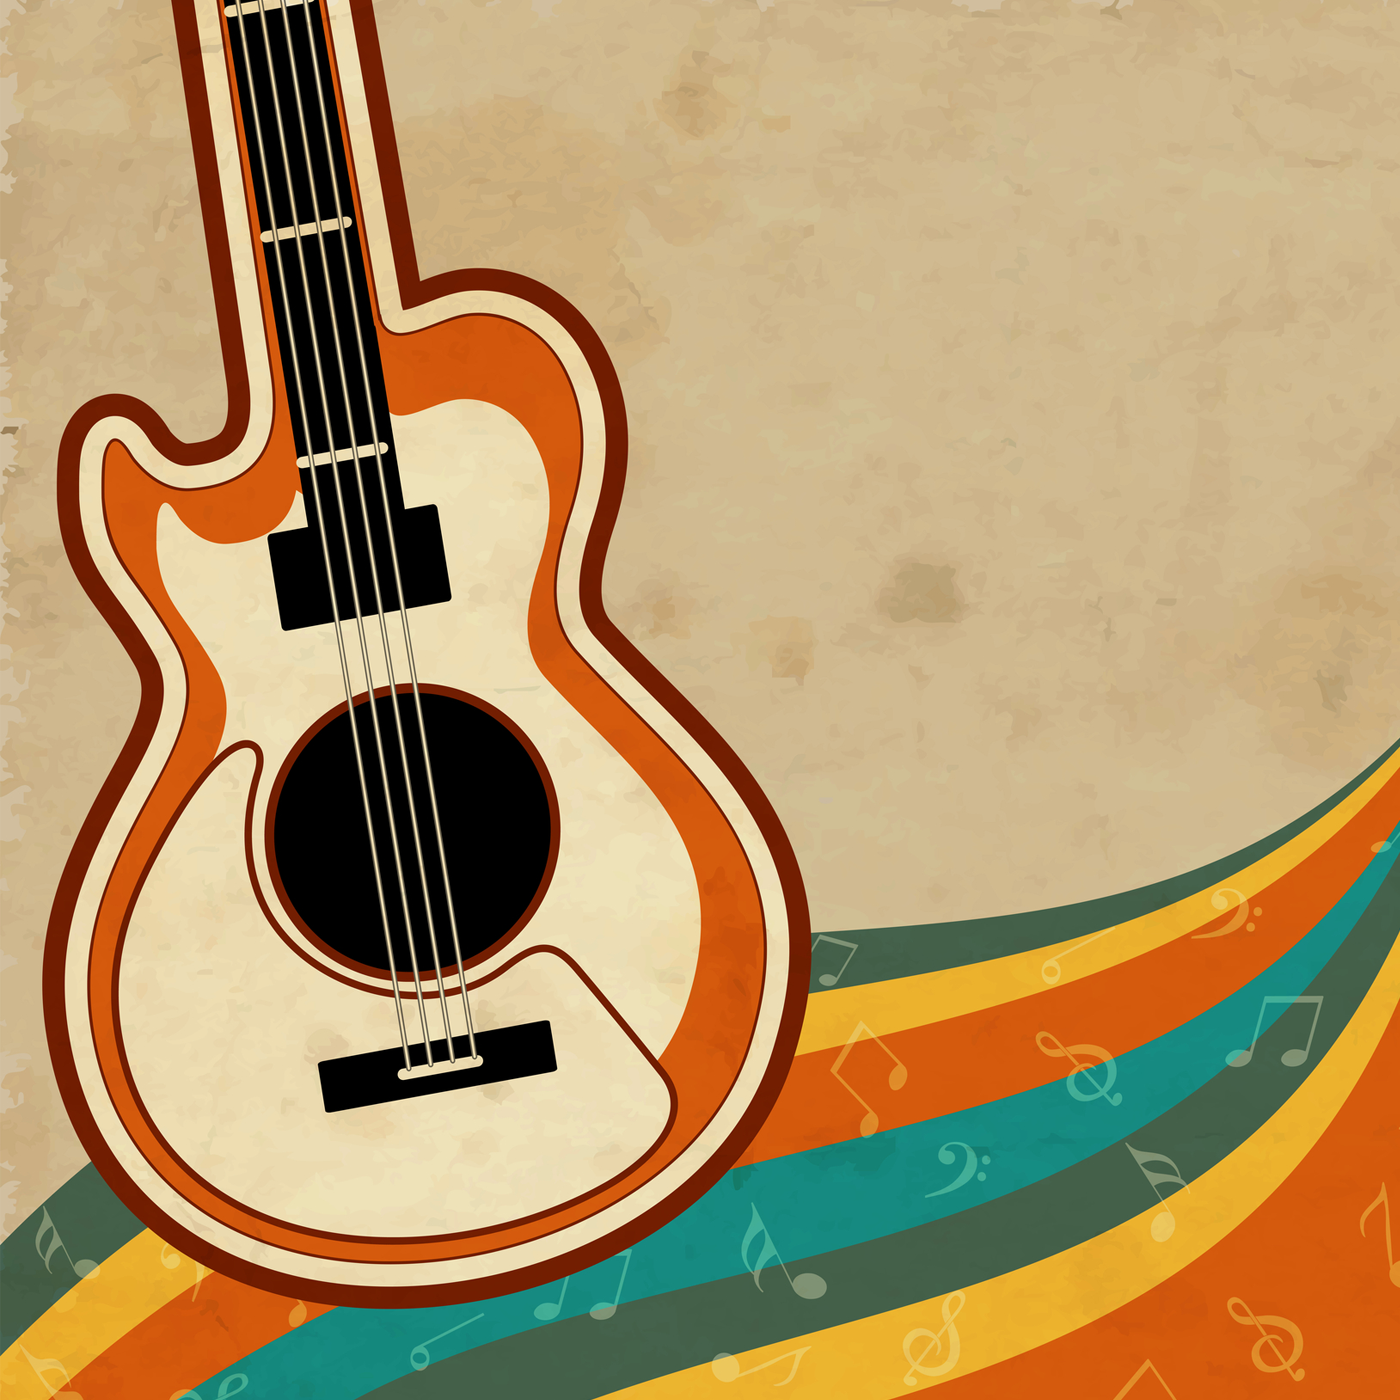 70s guitar clipart banner transparent library ROCKRADIO.COM | rock music for life banner transparent library